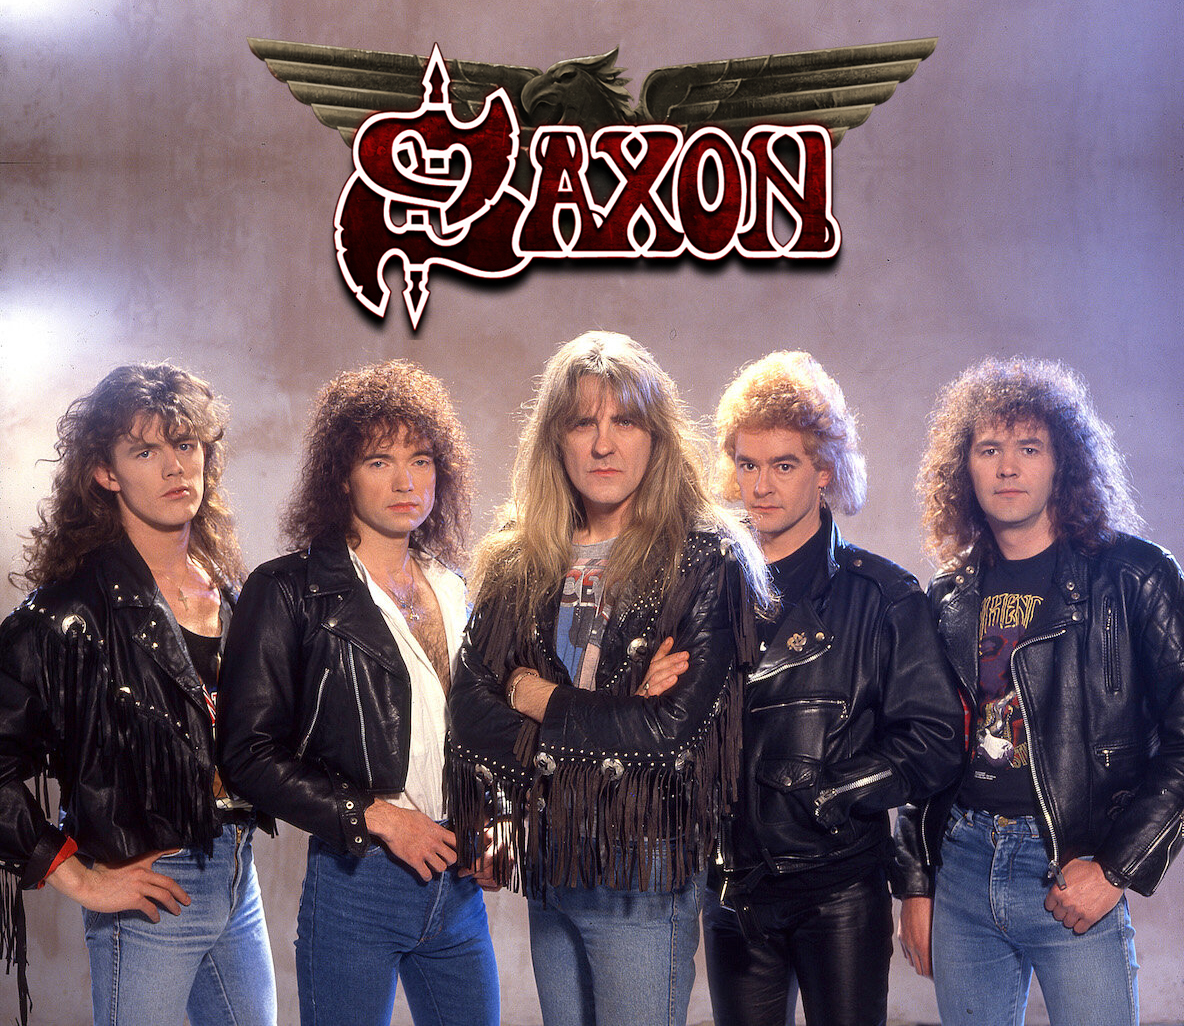 Saxon_with_logo